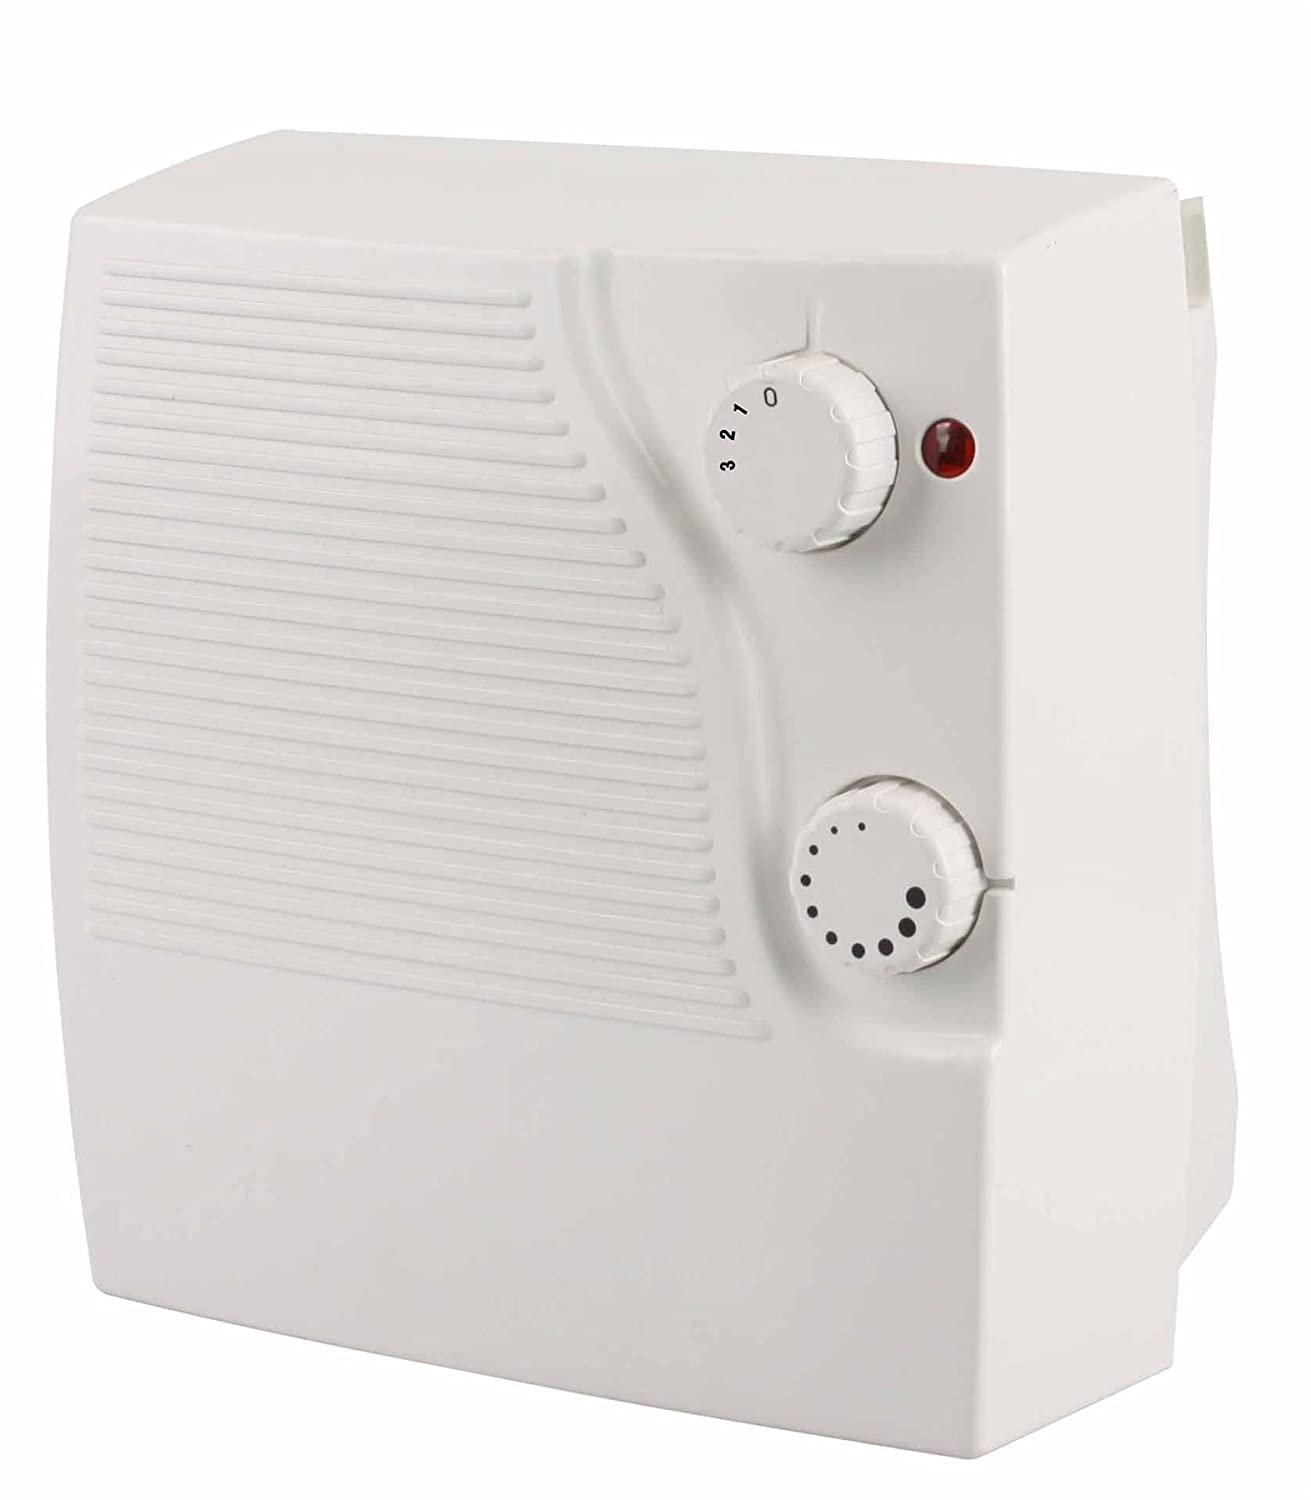 with control holmes heaters safe and digital touch plug heater review bathroom